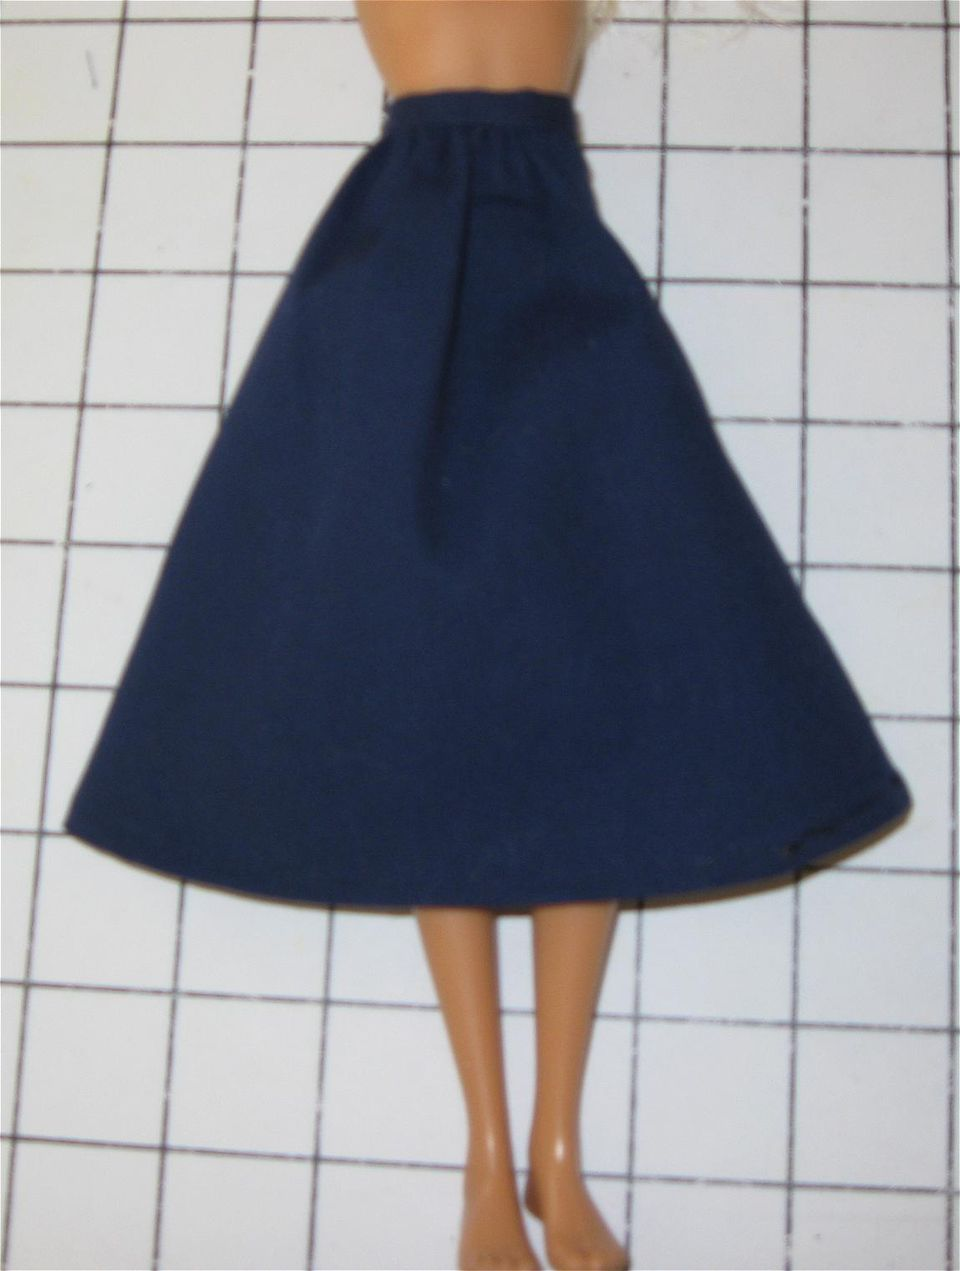 Sew a Fashion Doll or Barbie Skirt